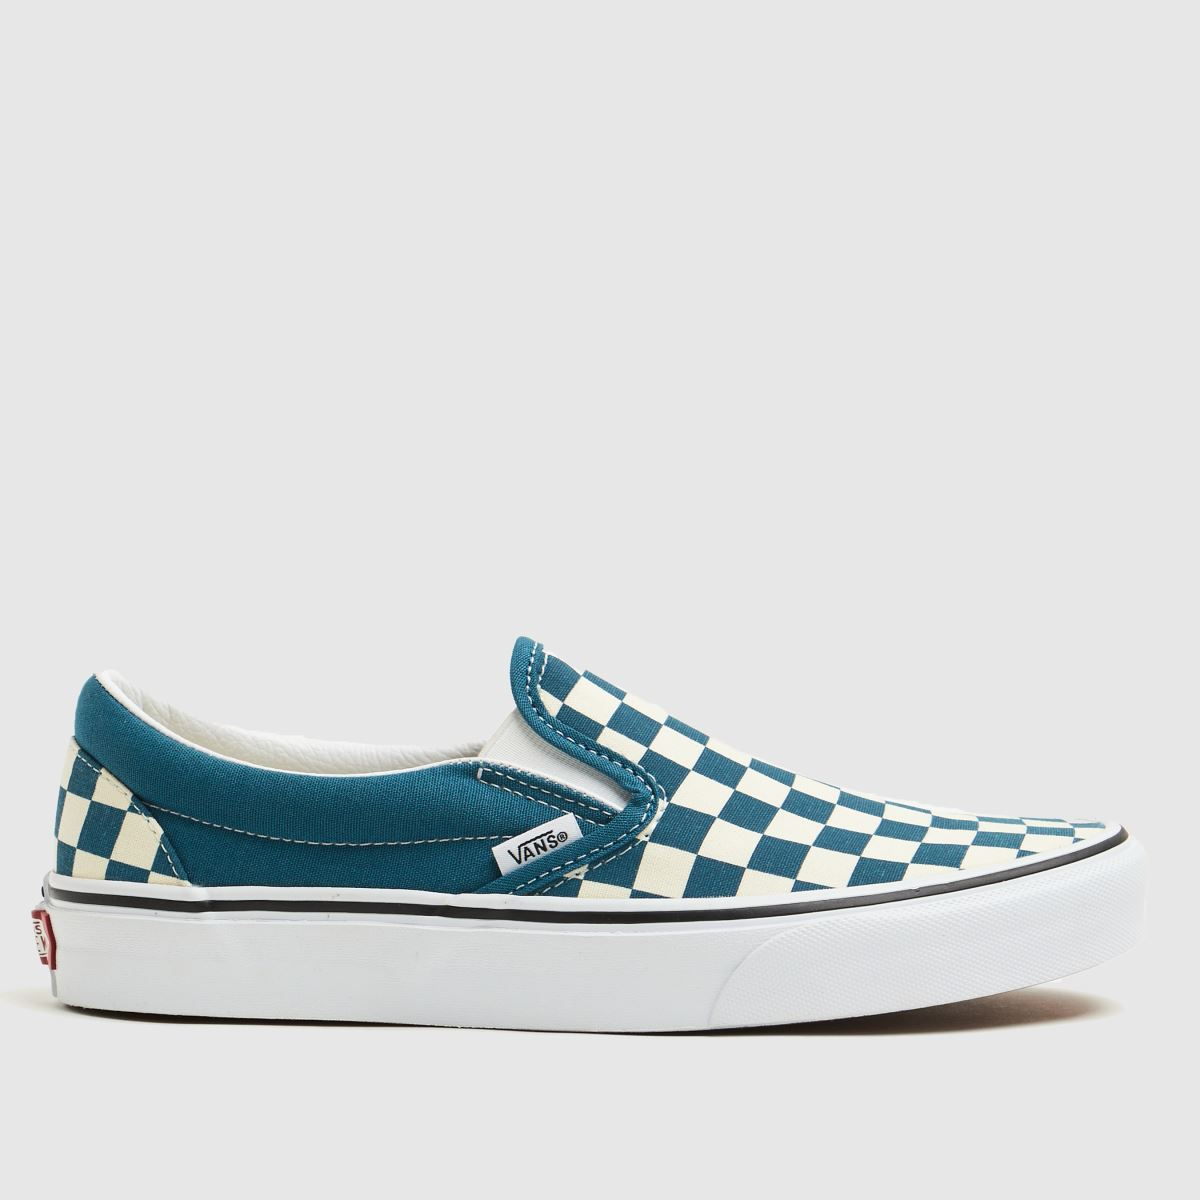 Vans Blue Classic Checkerboard Slip On Trainers